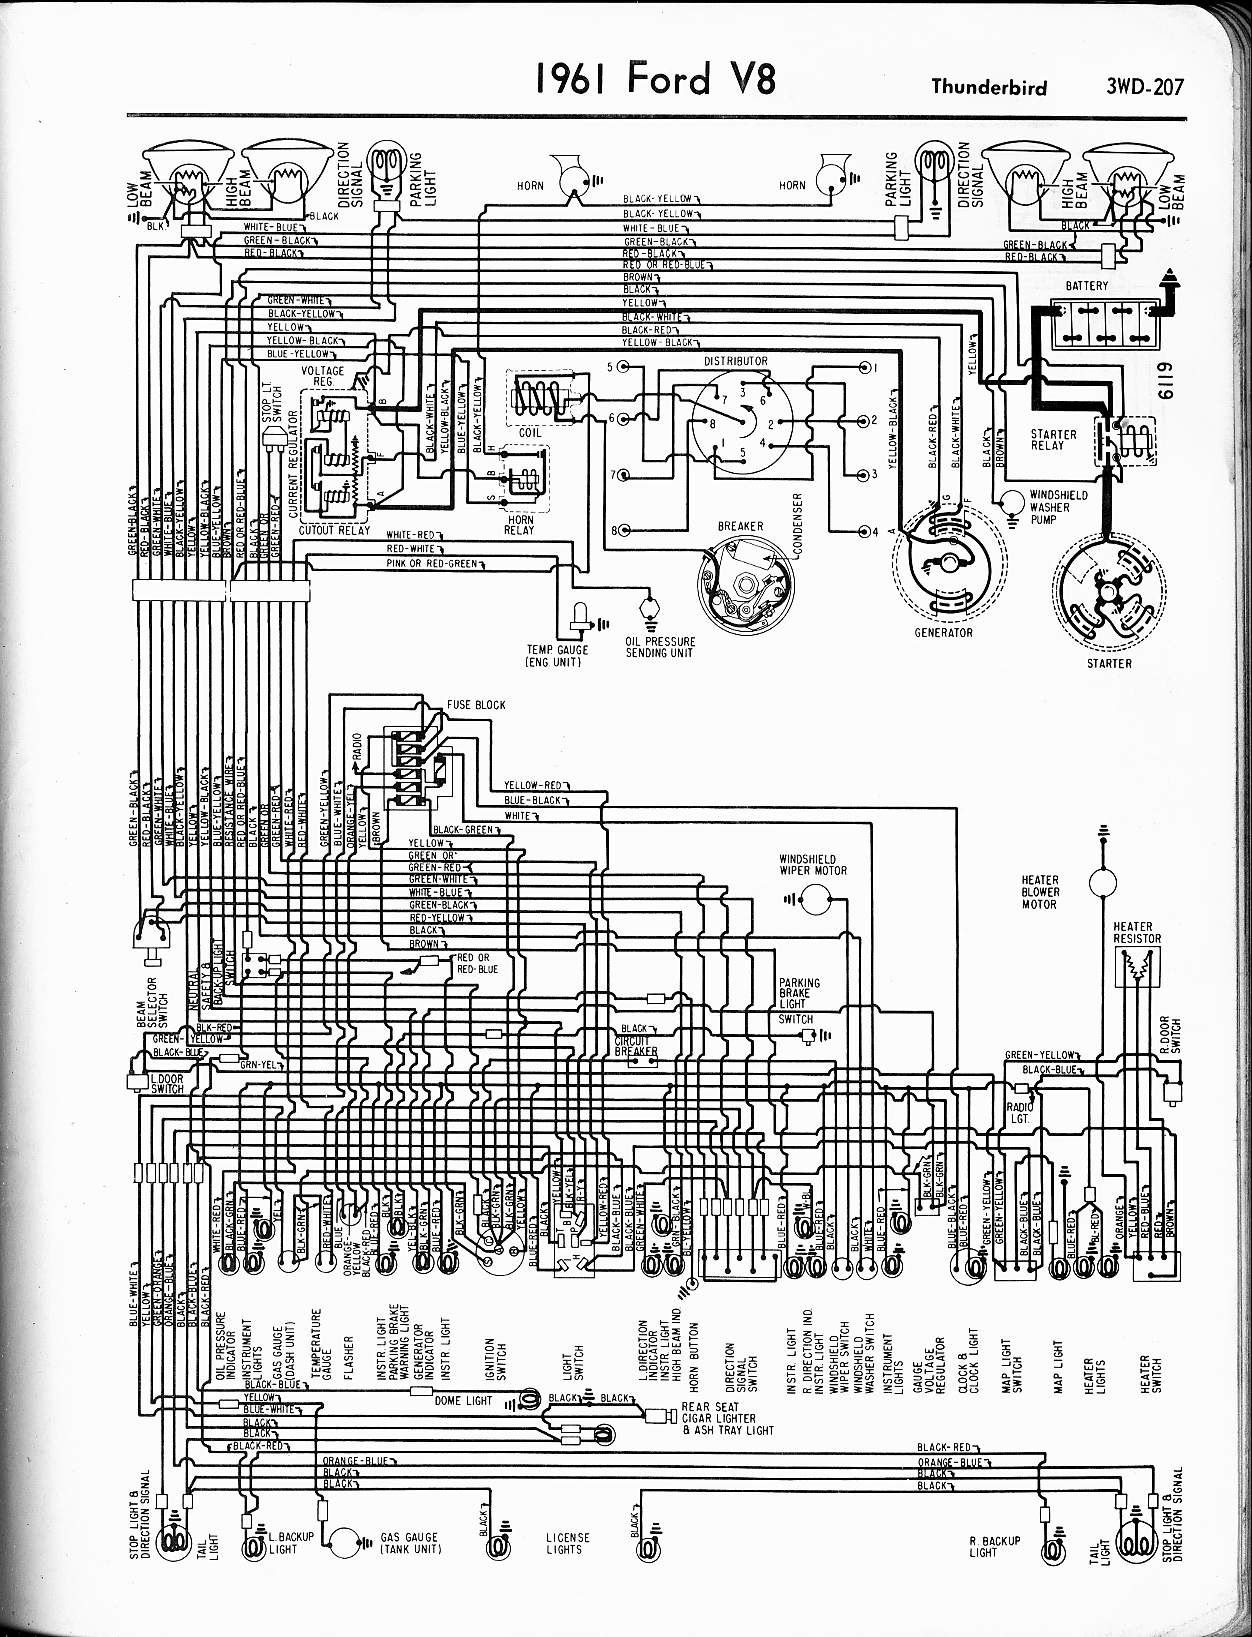 57 65 Ford Wiring Diagrams 1961 F100 Diagram For Color 1966 Pick Up